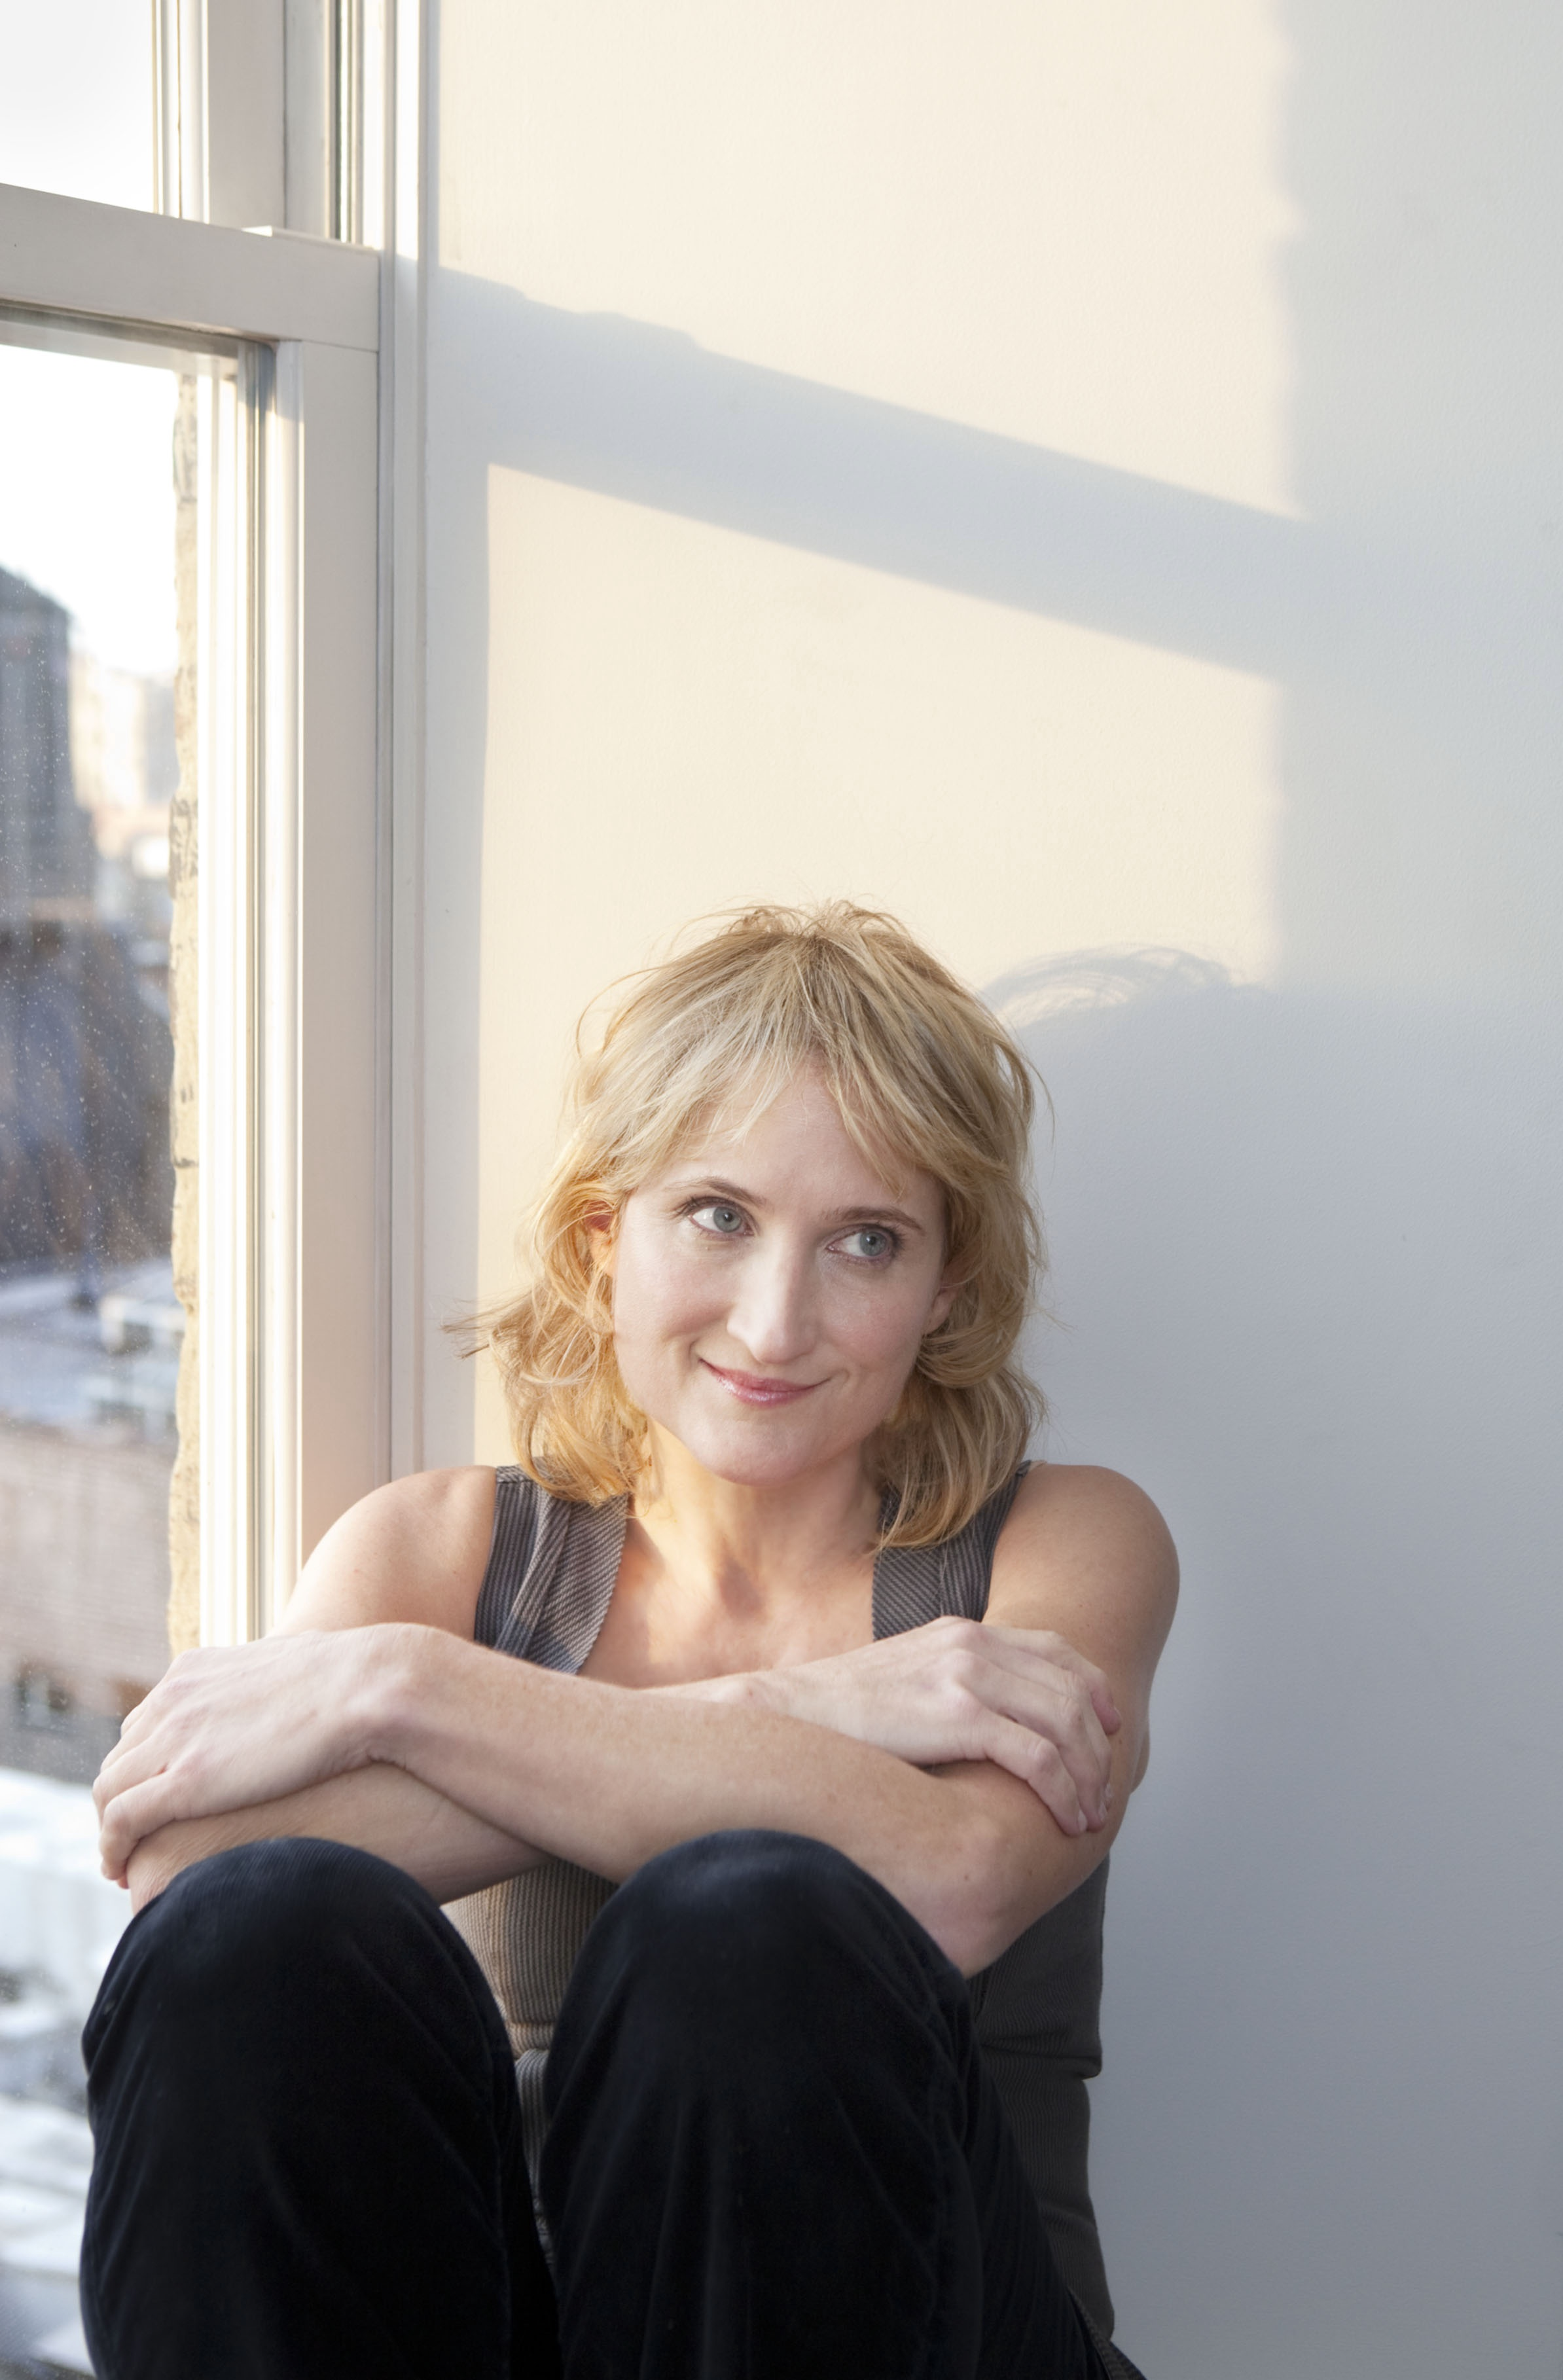 Jill Sobule: Please don't steal from her.